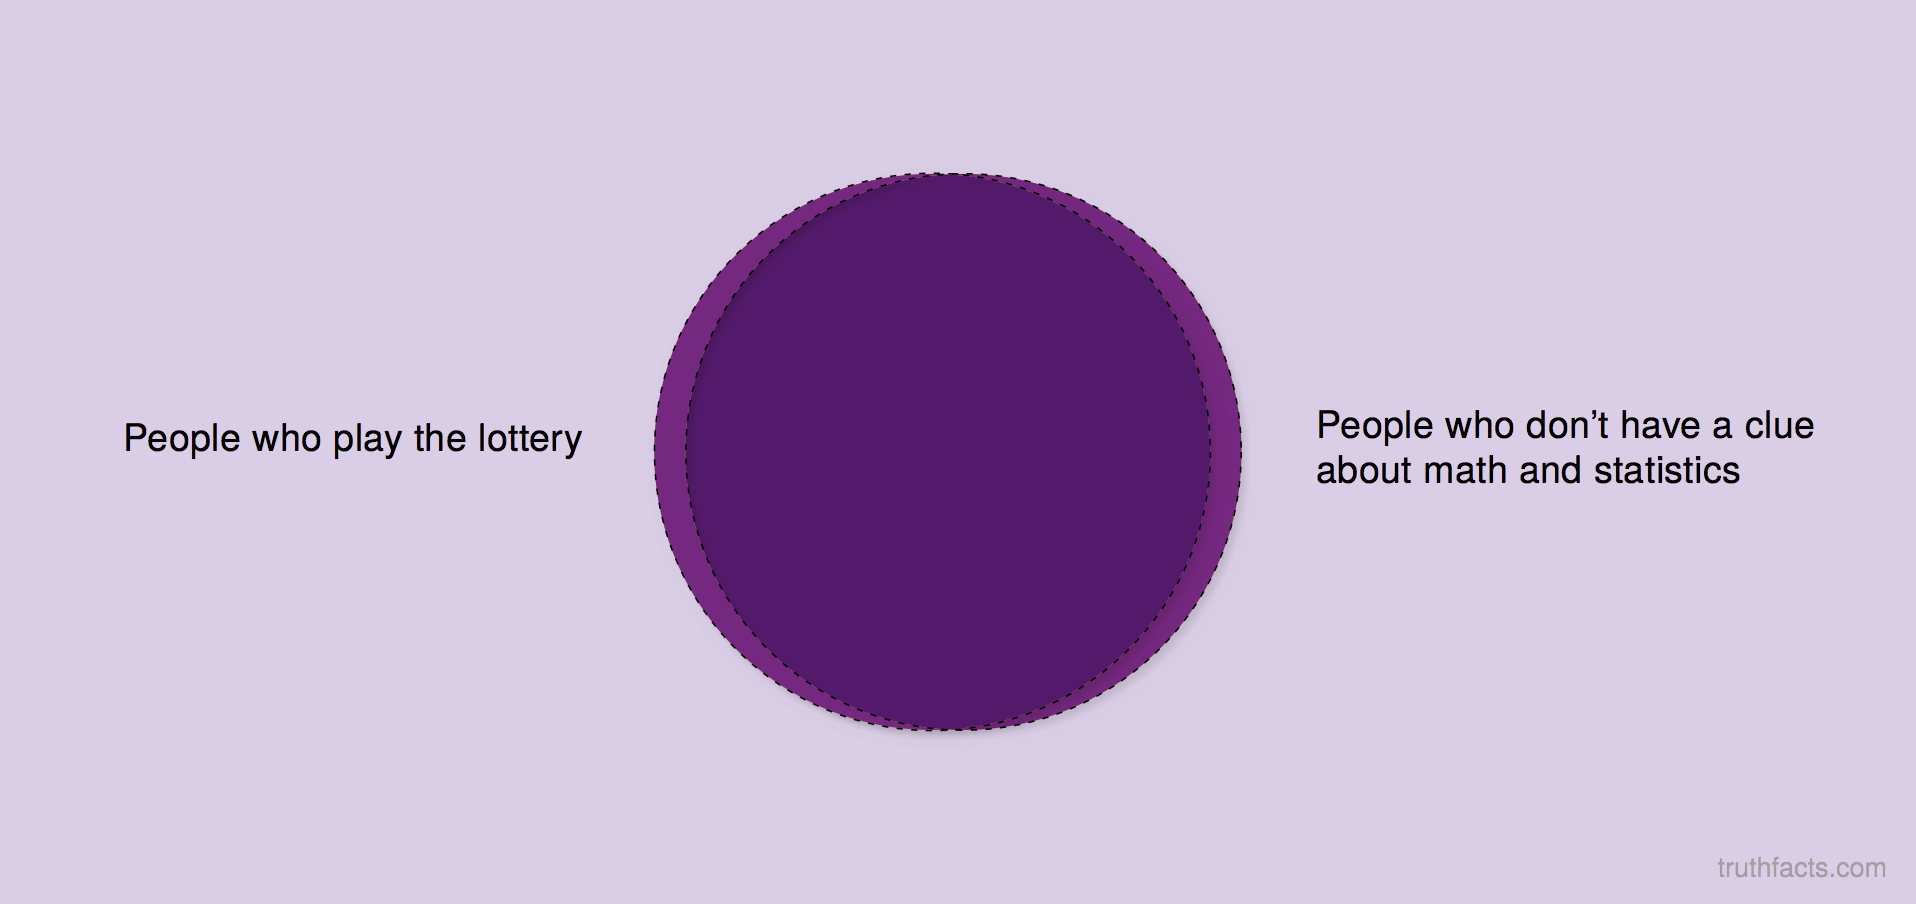 People who play the lottery